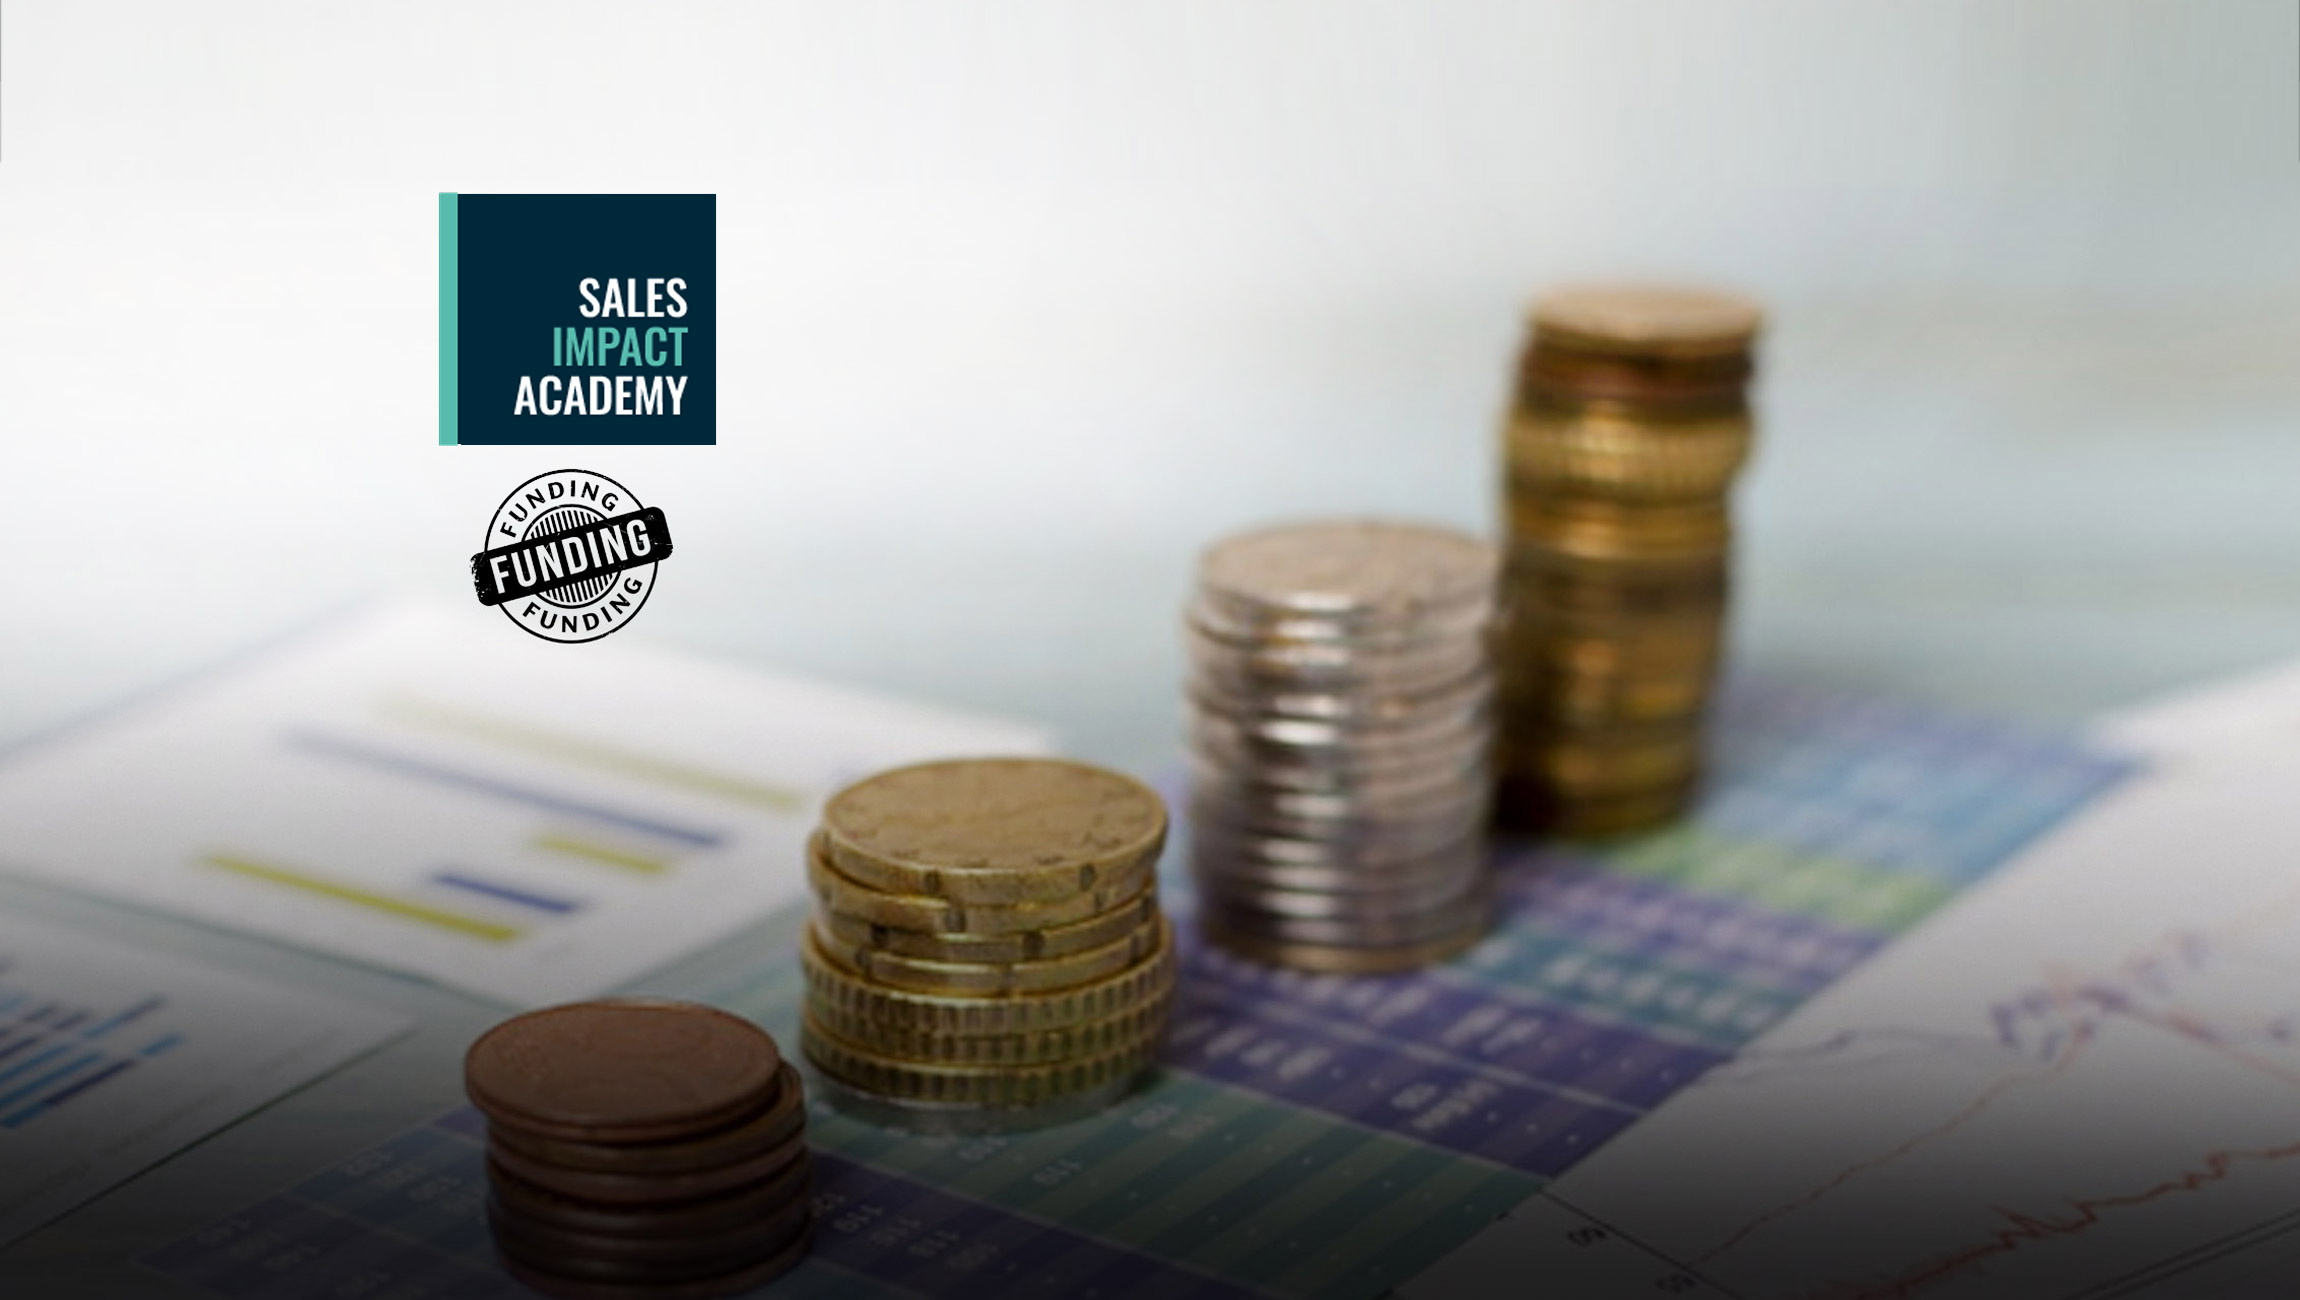 Sales Impact Academy Secures $4M in Funding to Accelerate Learning Solution for Go-To-Market Teams